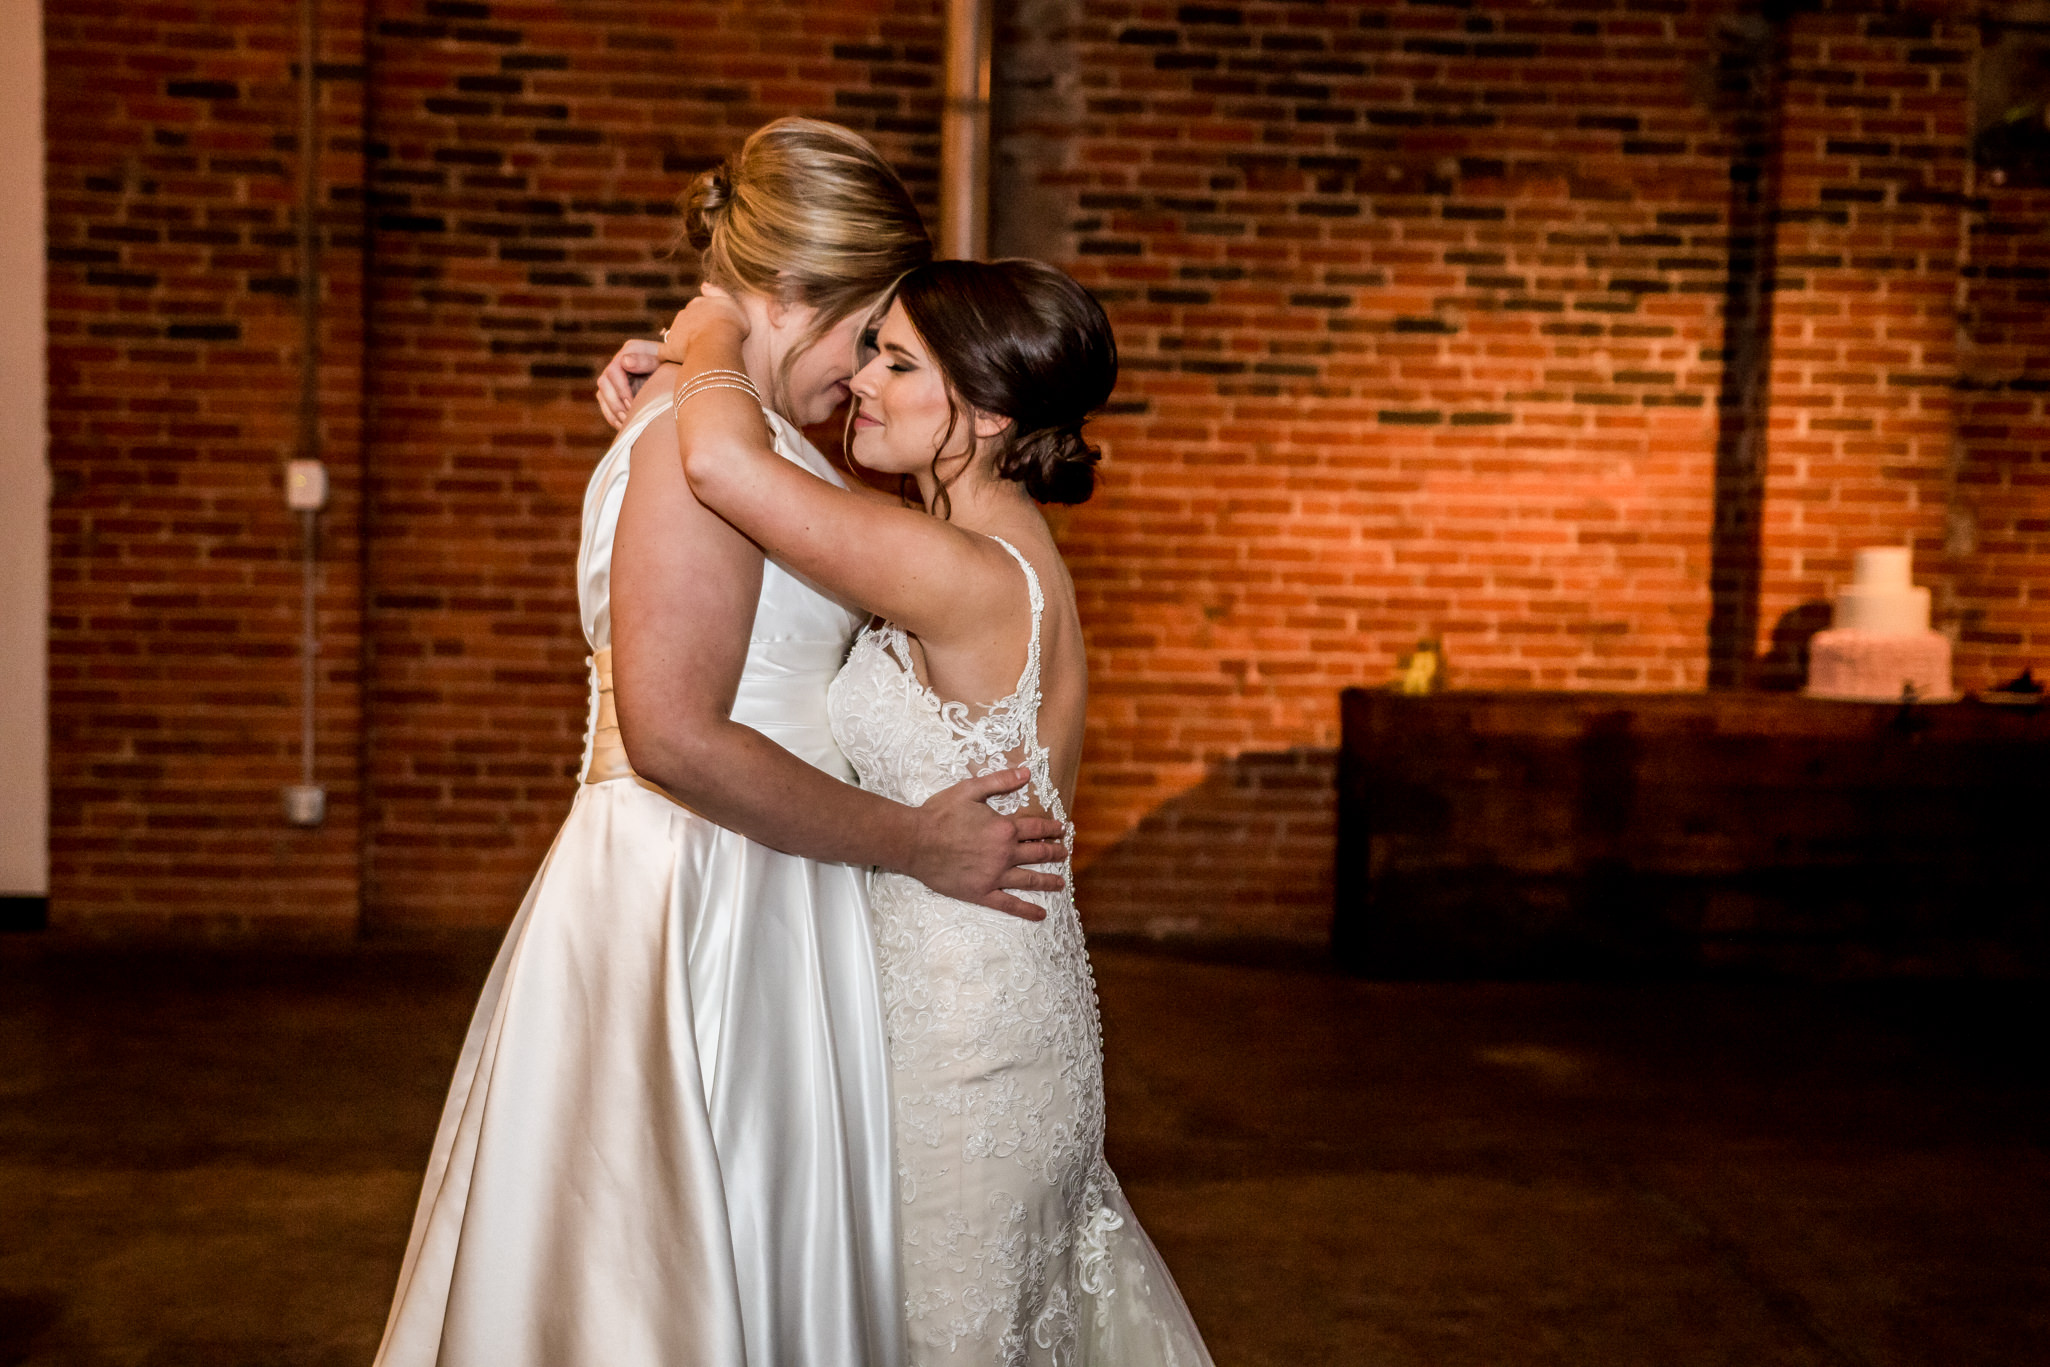 LGBTQ Wedding Columbus OH 3111.JPG